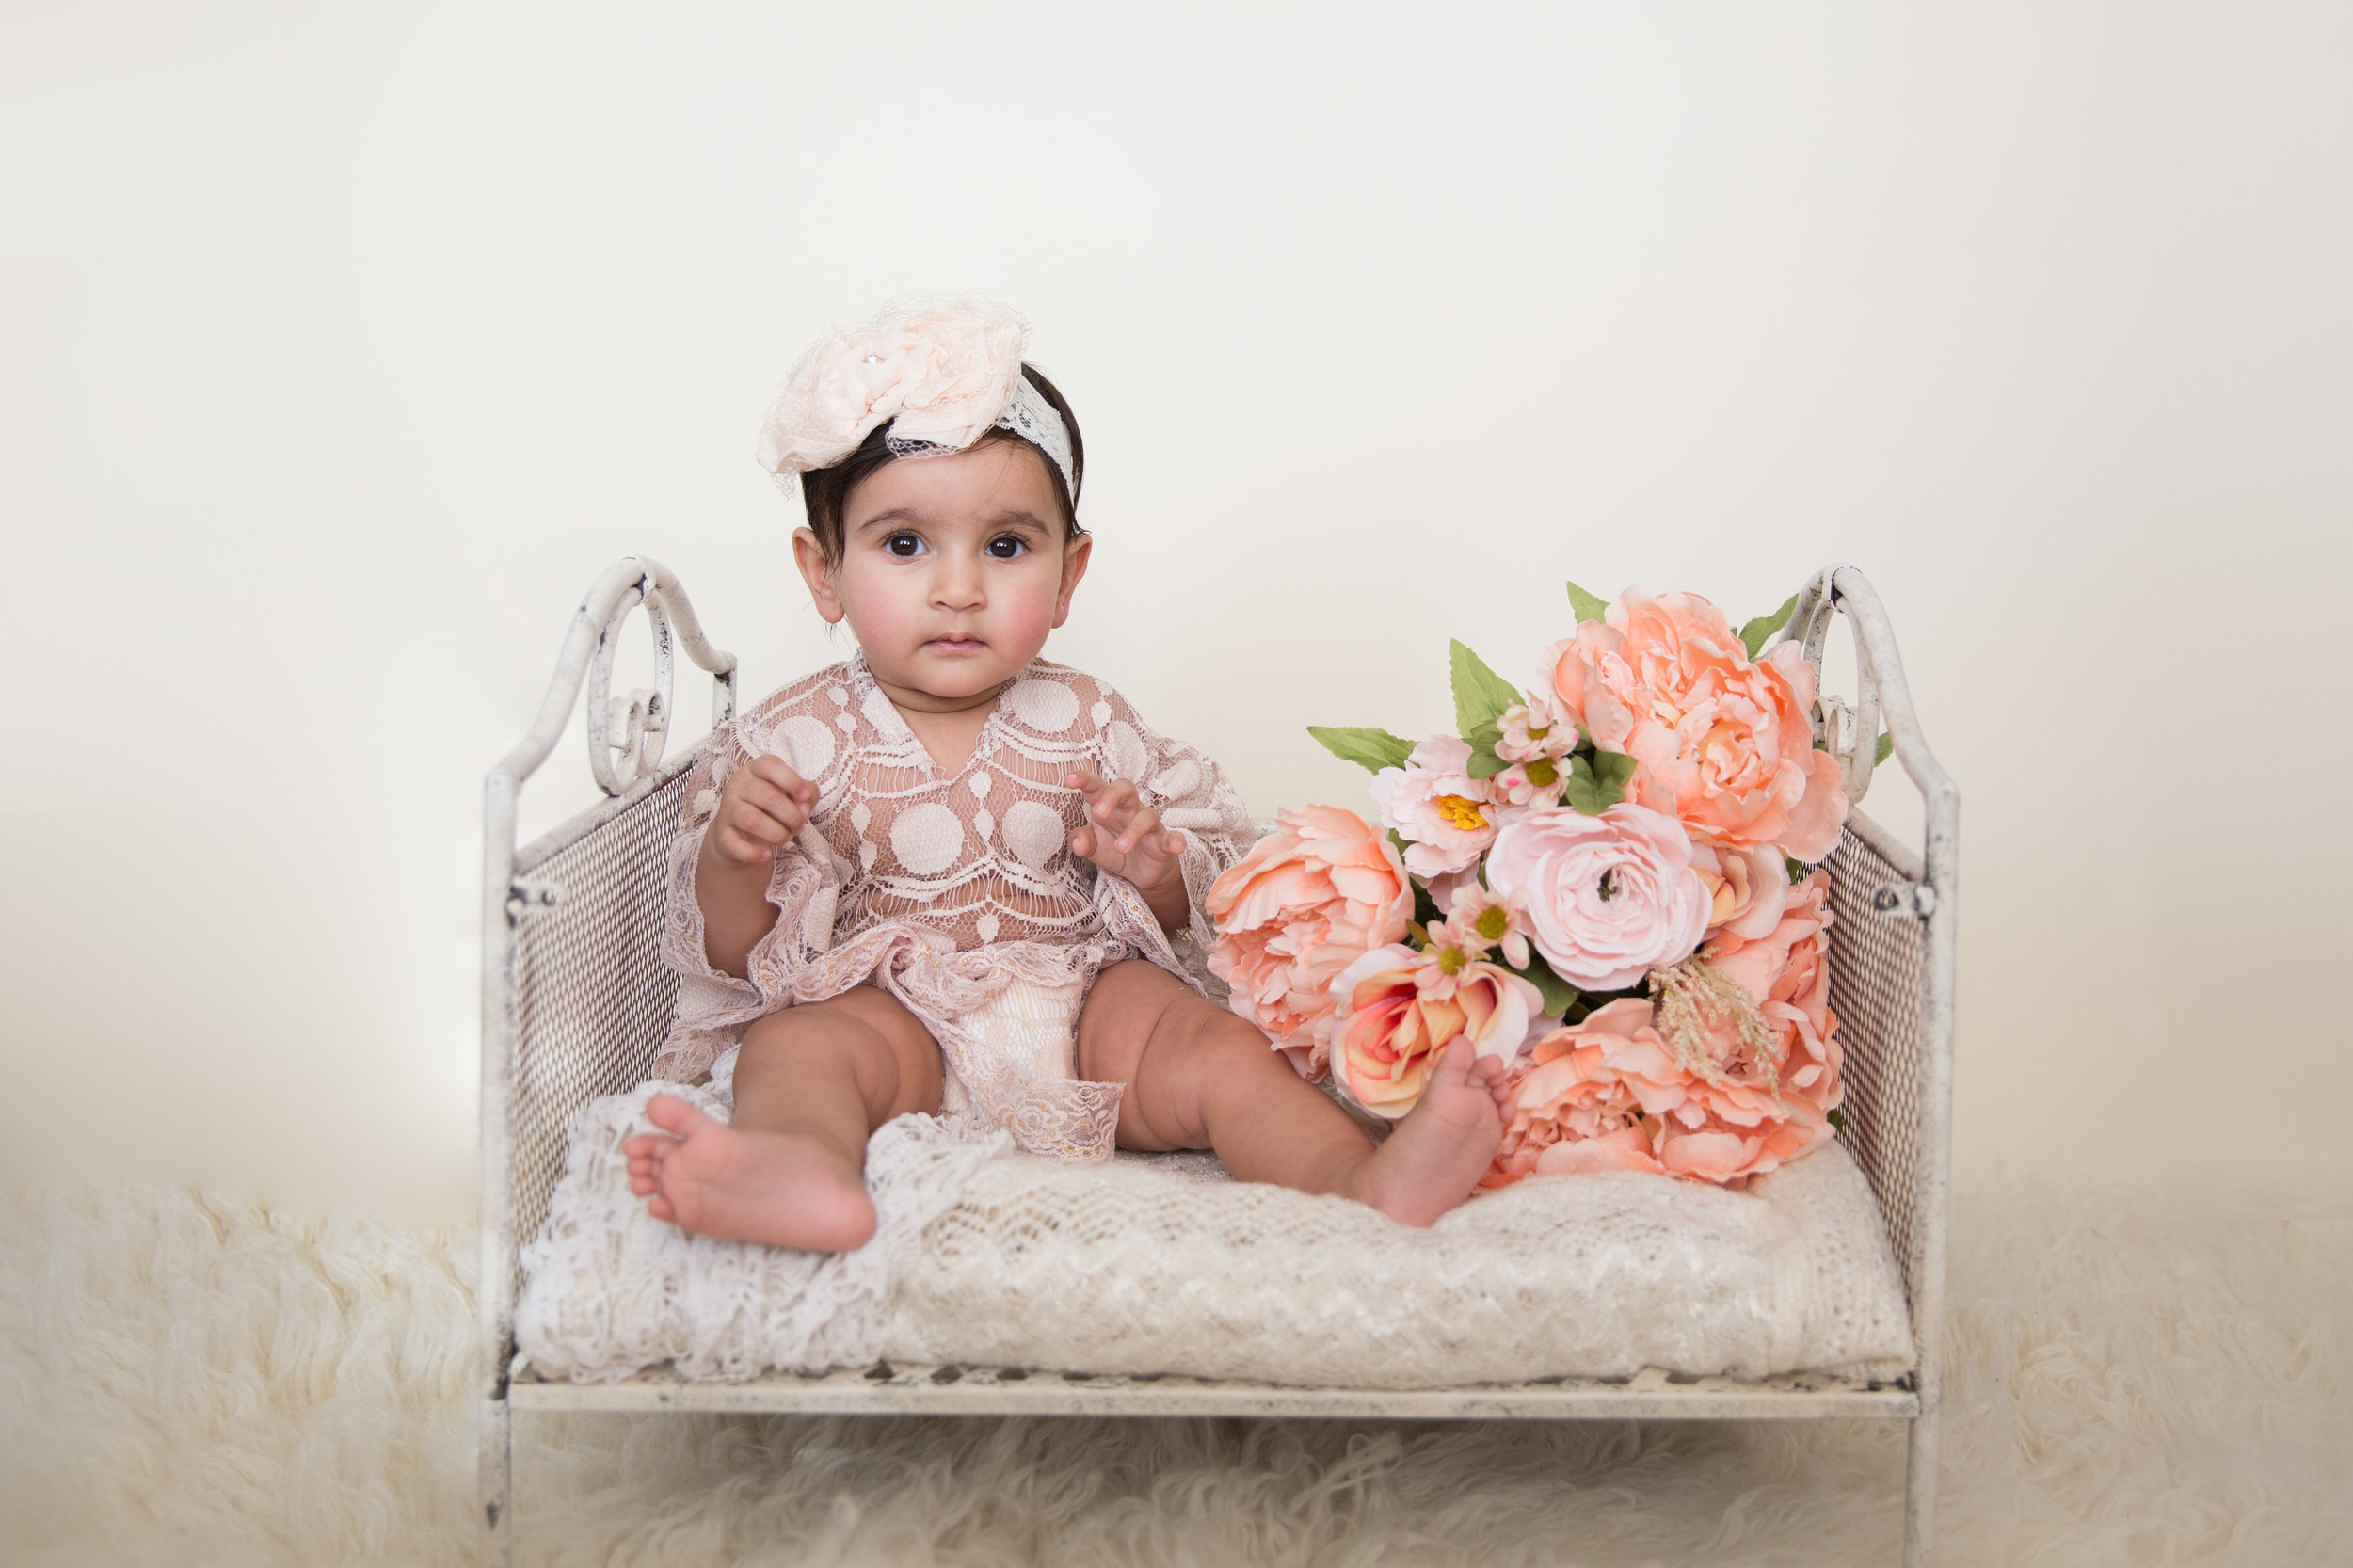 Adorable baby girl wearing lace outfit and sitting on a vintage bed surrounded by flowers. Calgary Baby Photographer